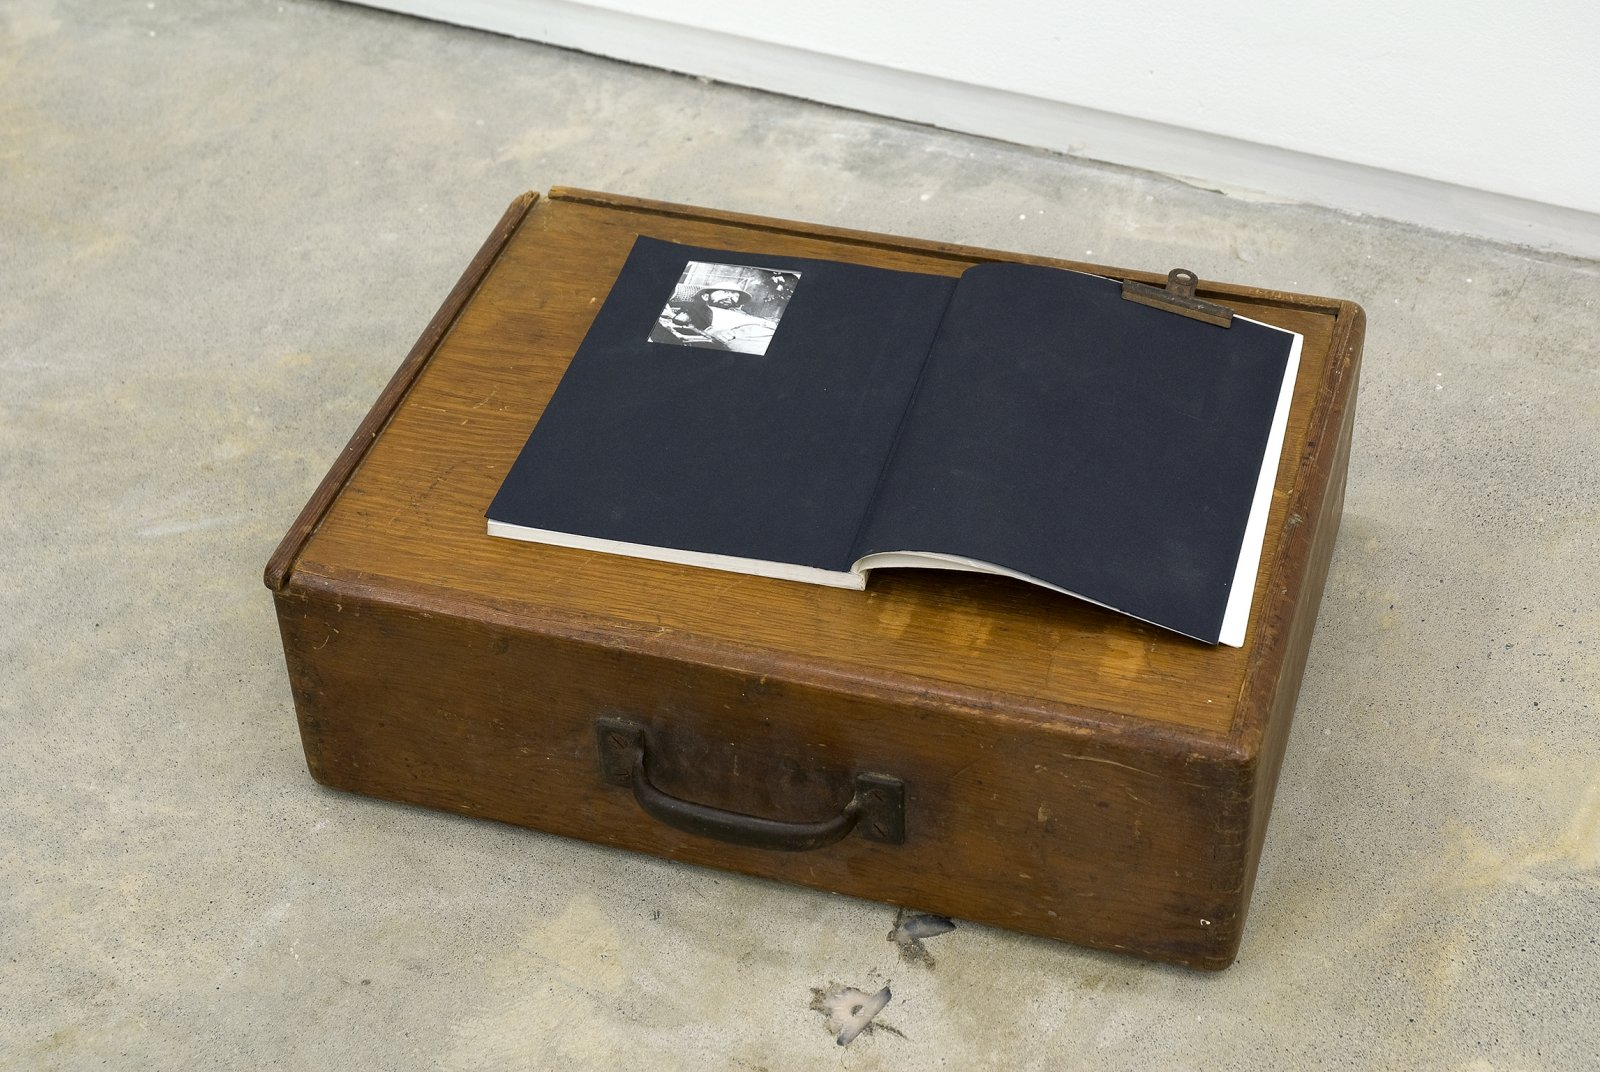 Gareth Moore, The brush has almost dropped from his hands from Uncertain Pilgrimage, 2006-2009, book, black paper, wooden case, 6 x 20 x 6  in. (15 x 51 x 16 cm) by Ashes Withyman